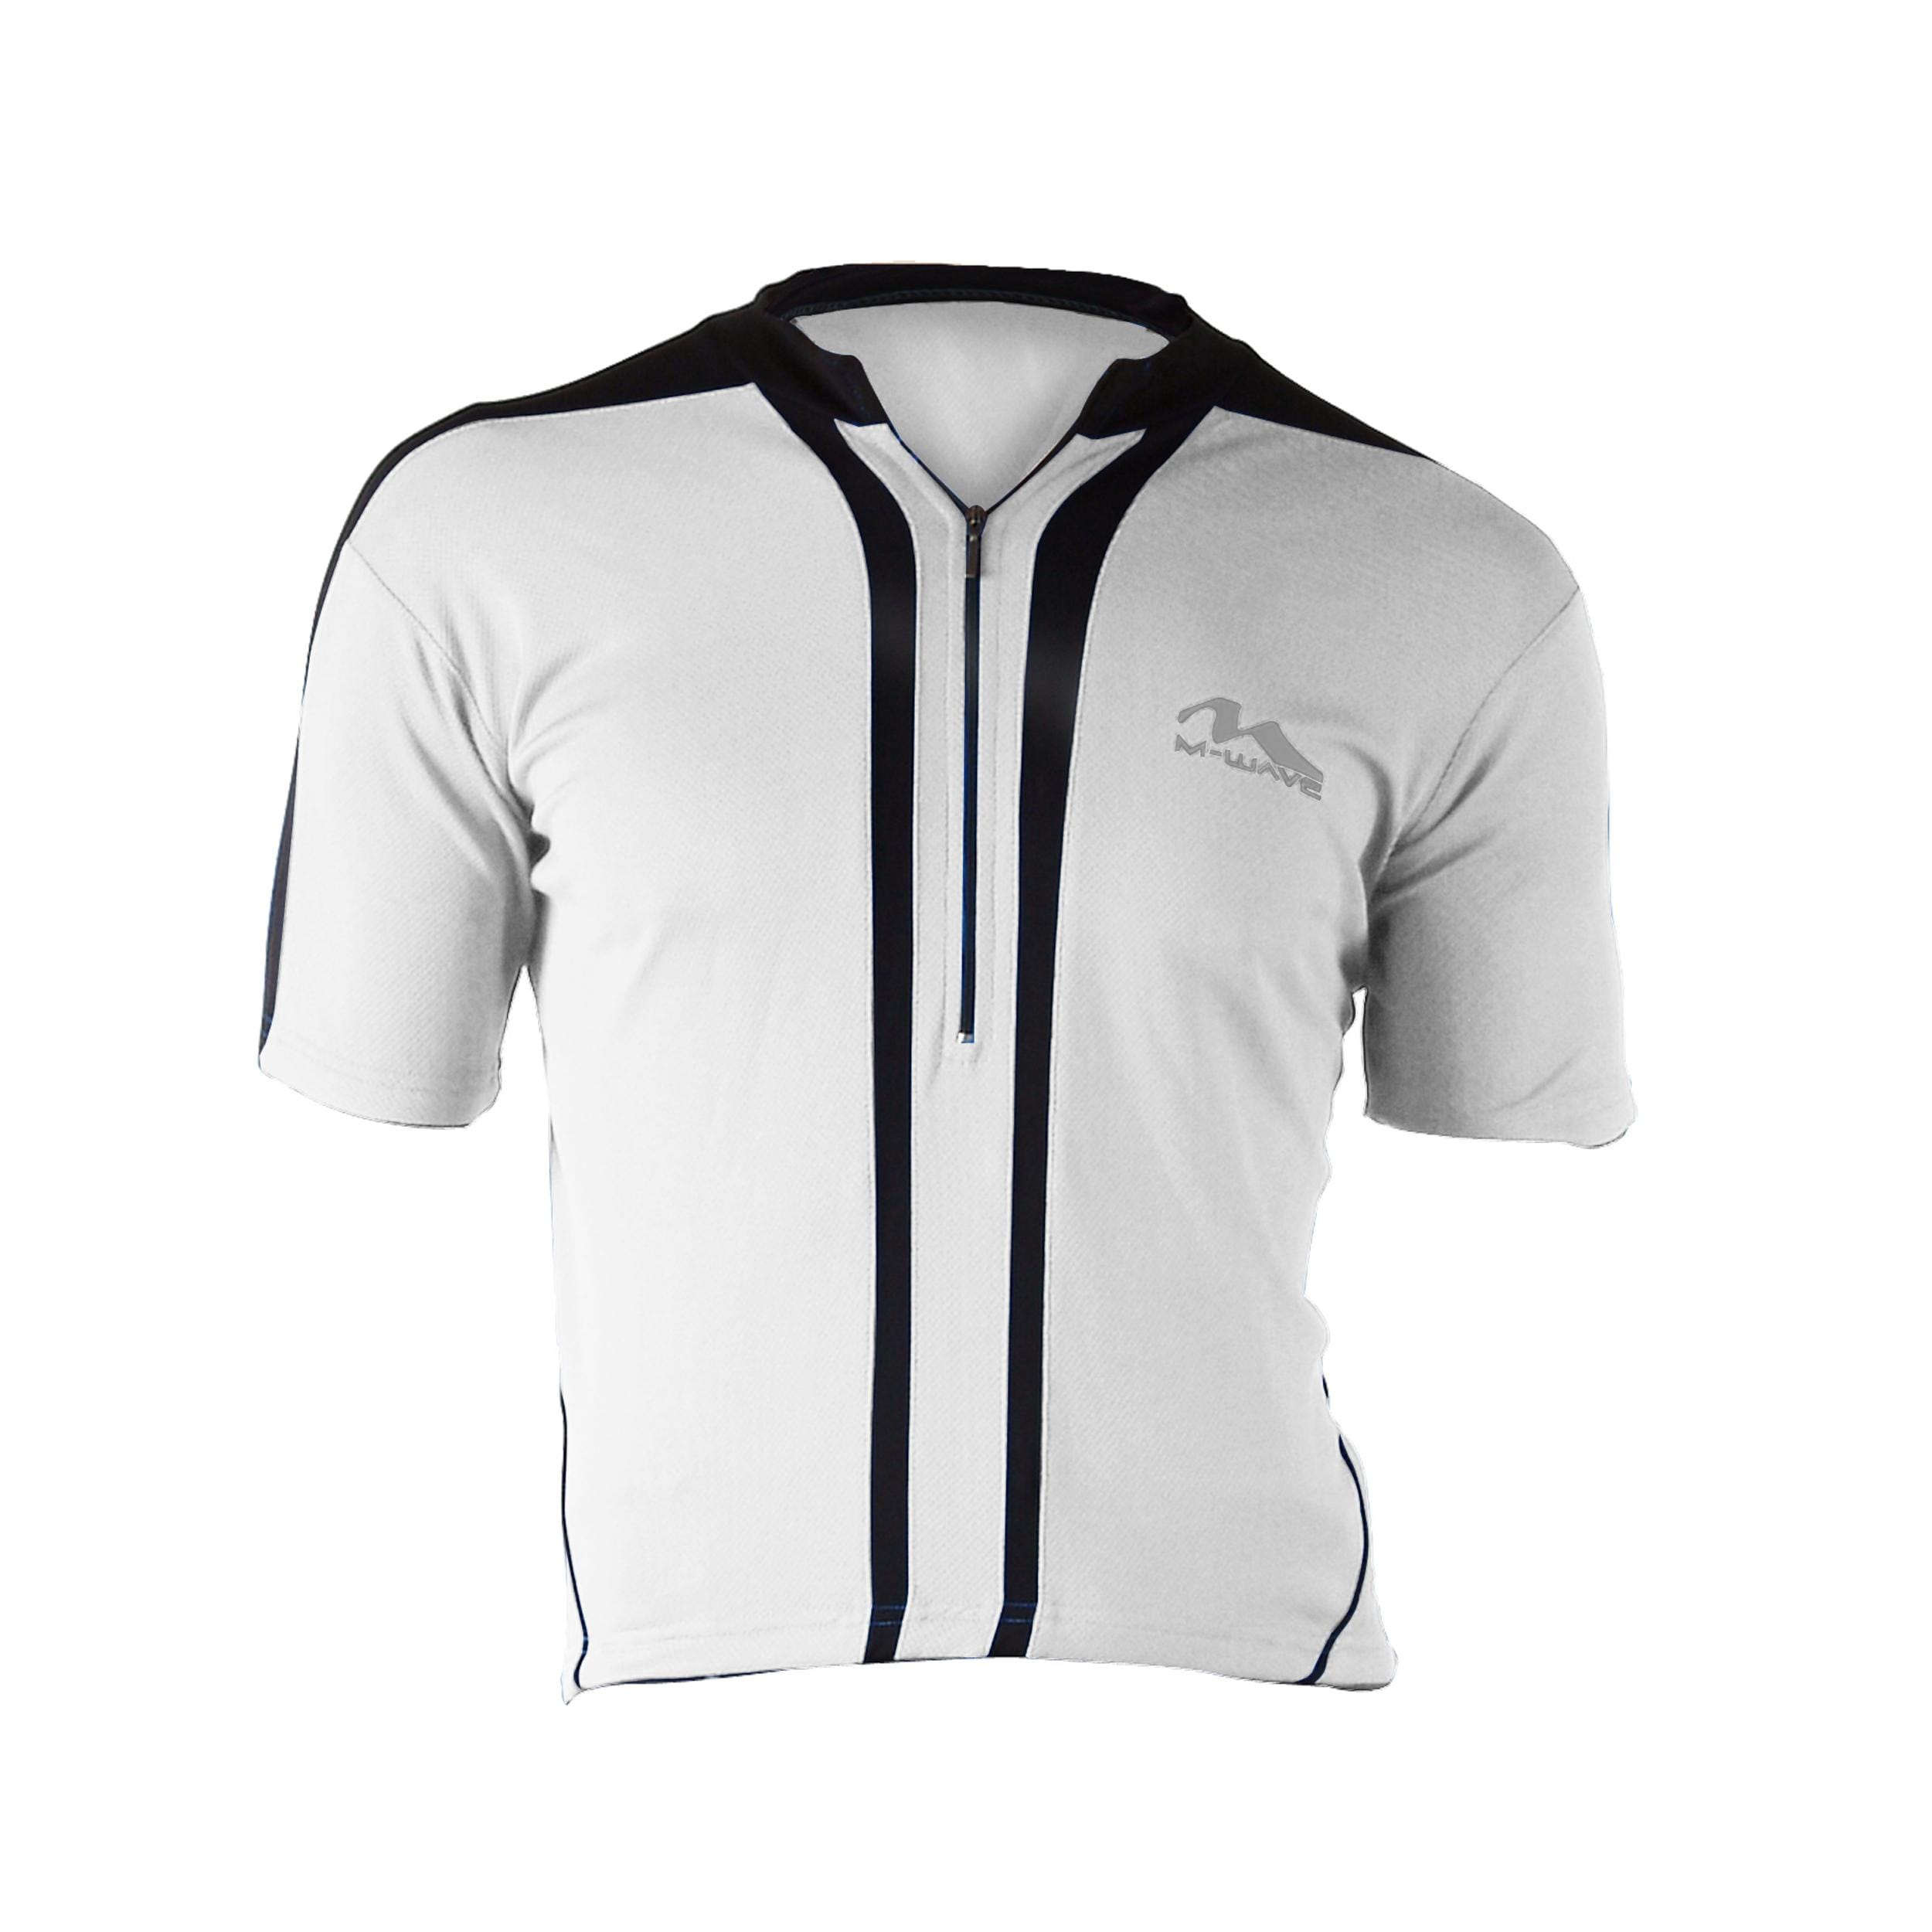 Cycle Force Men's M-Wave White Bicycle Jersey-Medium